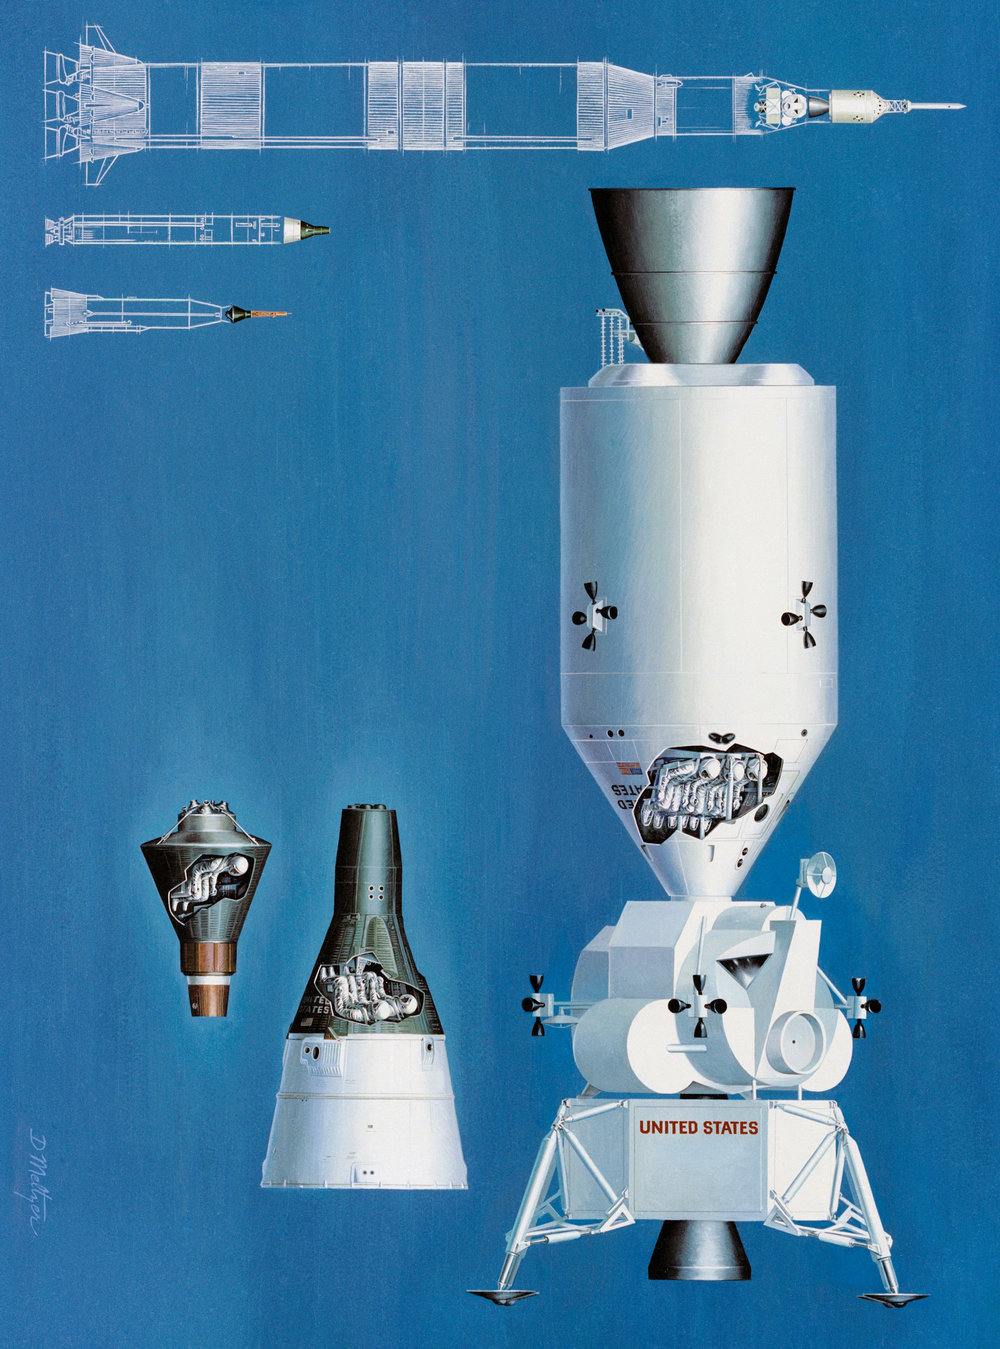 An Artist Concept illustrating the comparative sizes of the Mercury, Gemini and Apollo Spacecraft and their launch vehicles. MSC, HOUSTON, TX